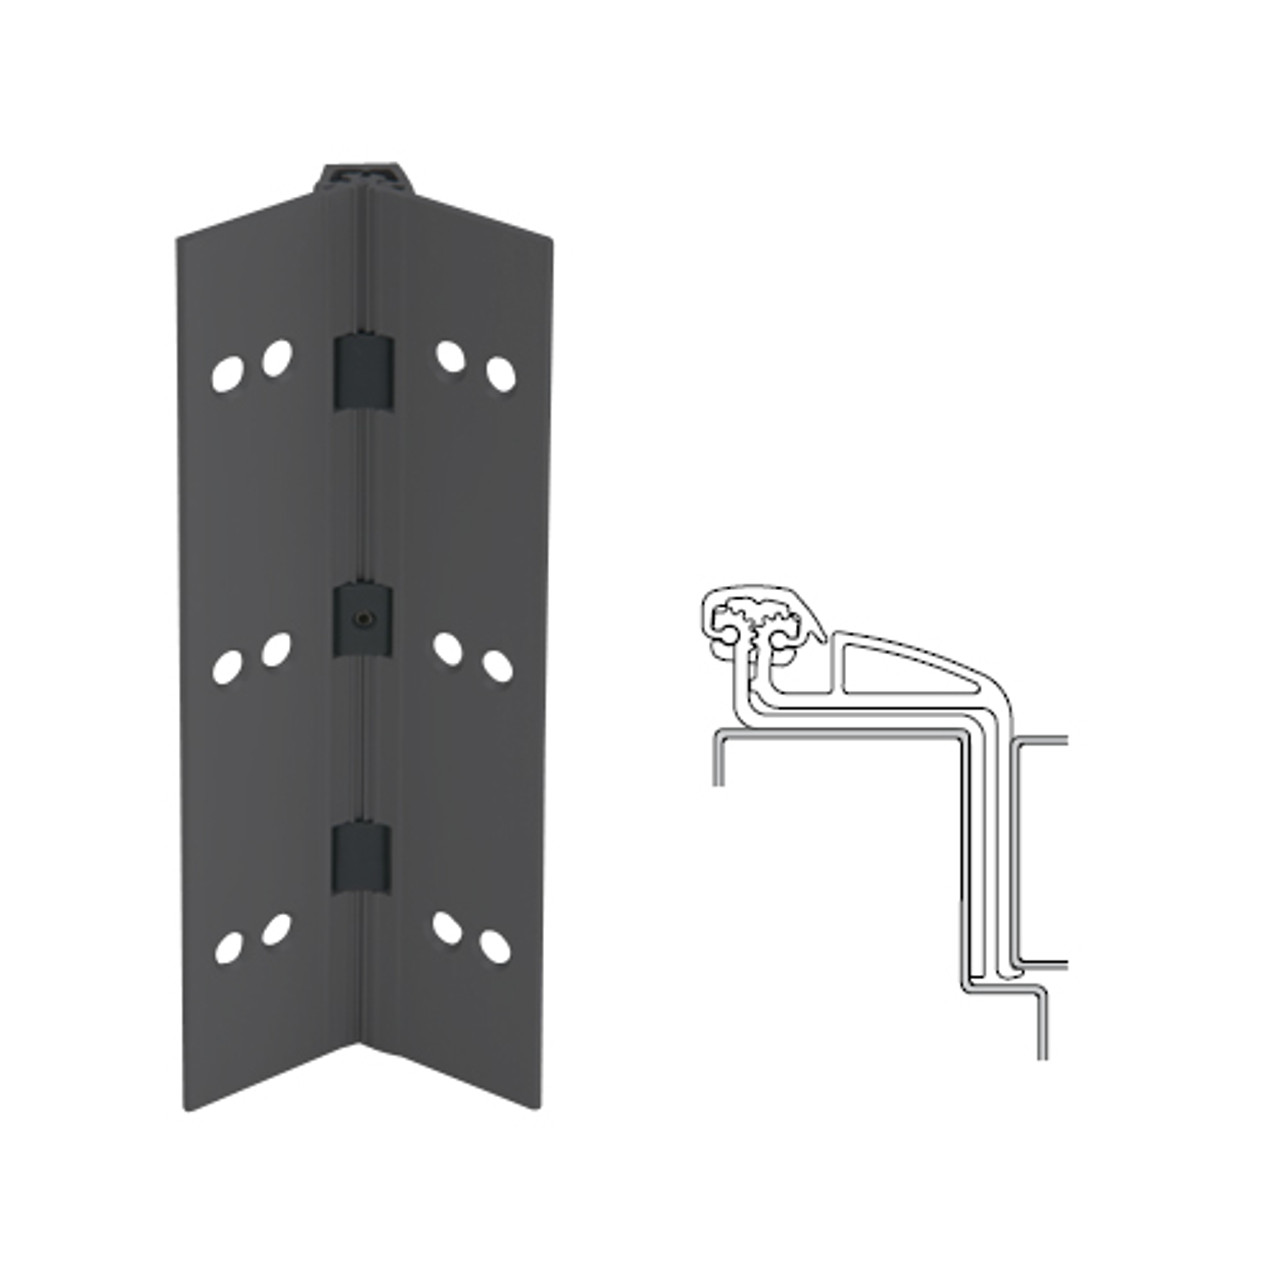 041XY-315AN-95-SECWDHM IVES Full Mortise Continuous Geared Hinges with Security Screws - Hex Pin Drive in Anodized Black